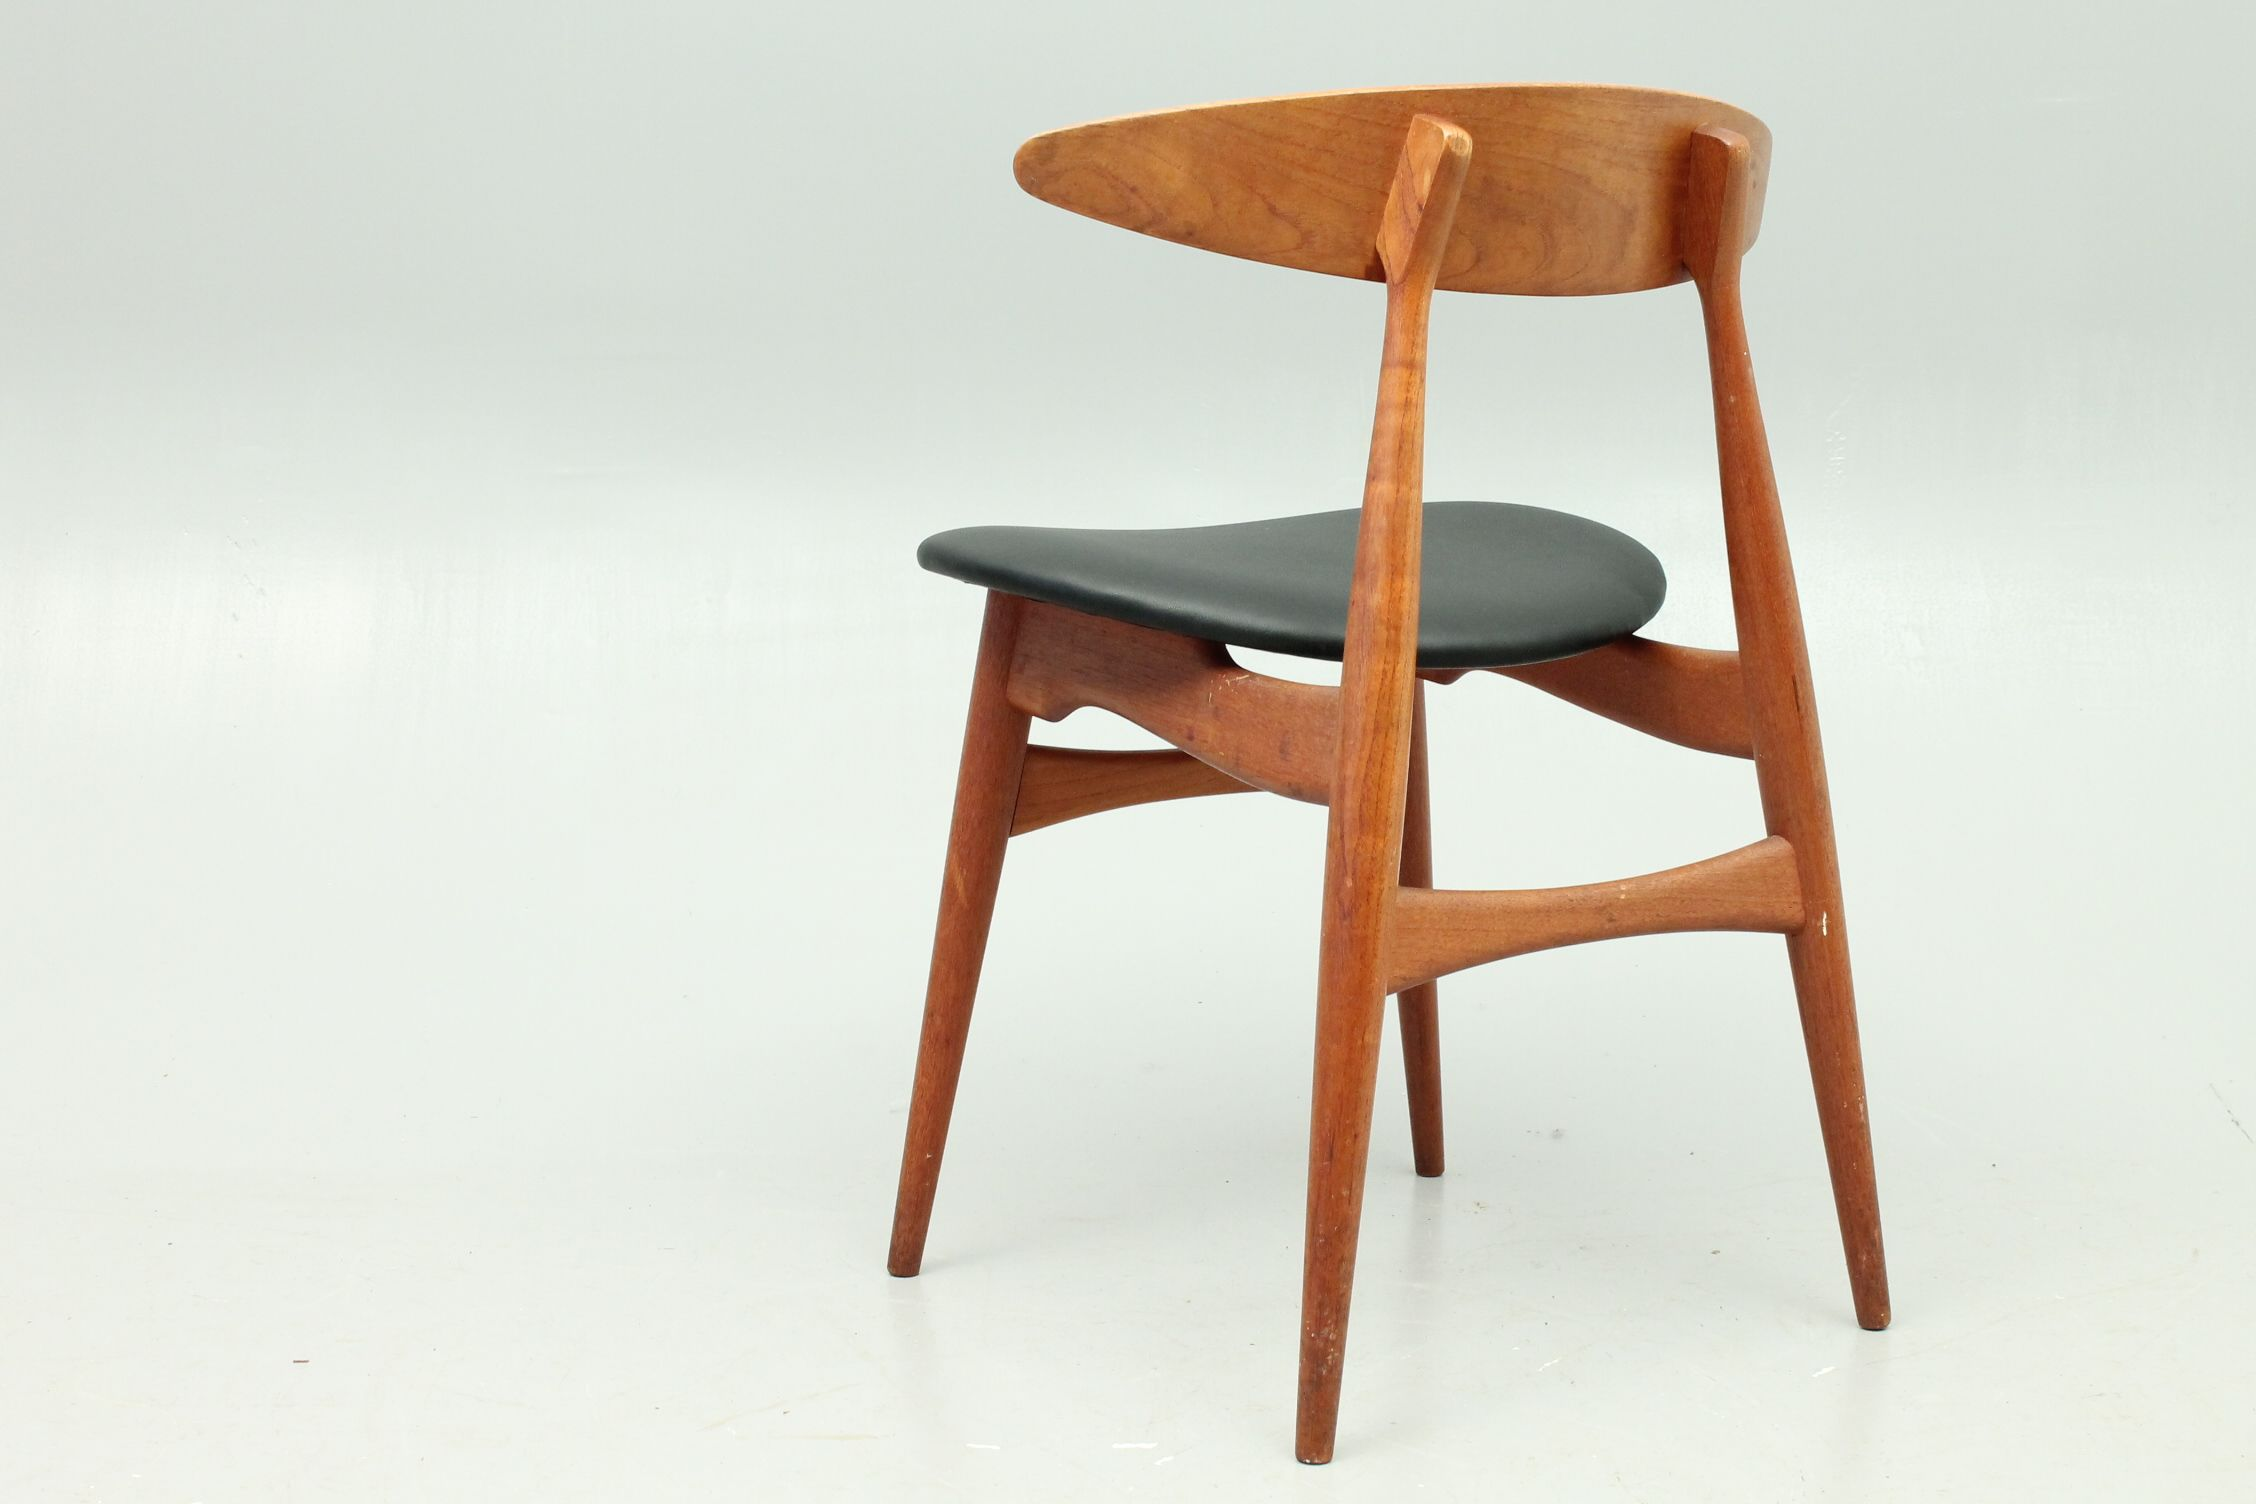 Ch 33 Chair In Teak With Leather Seat Designed By Hans Jorgen